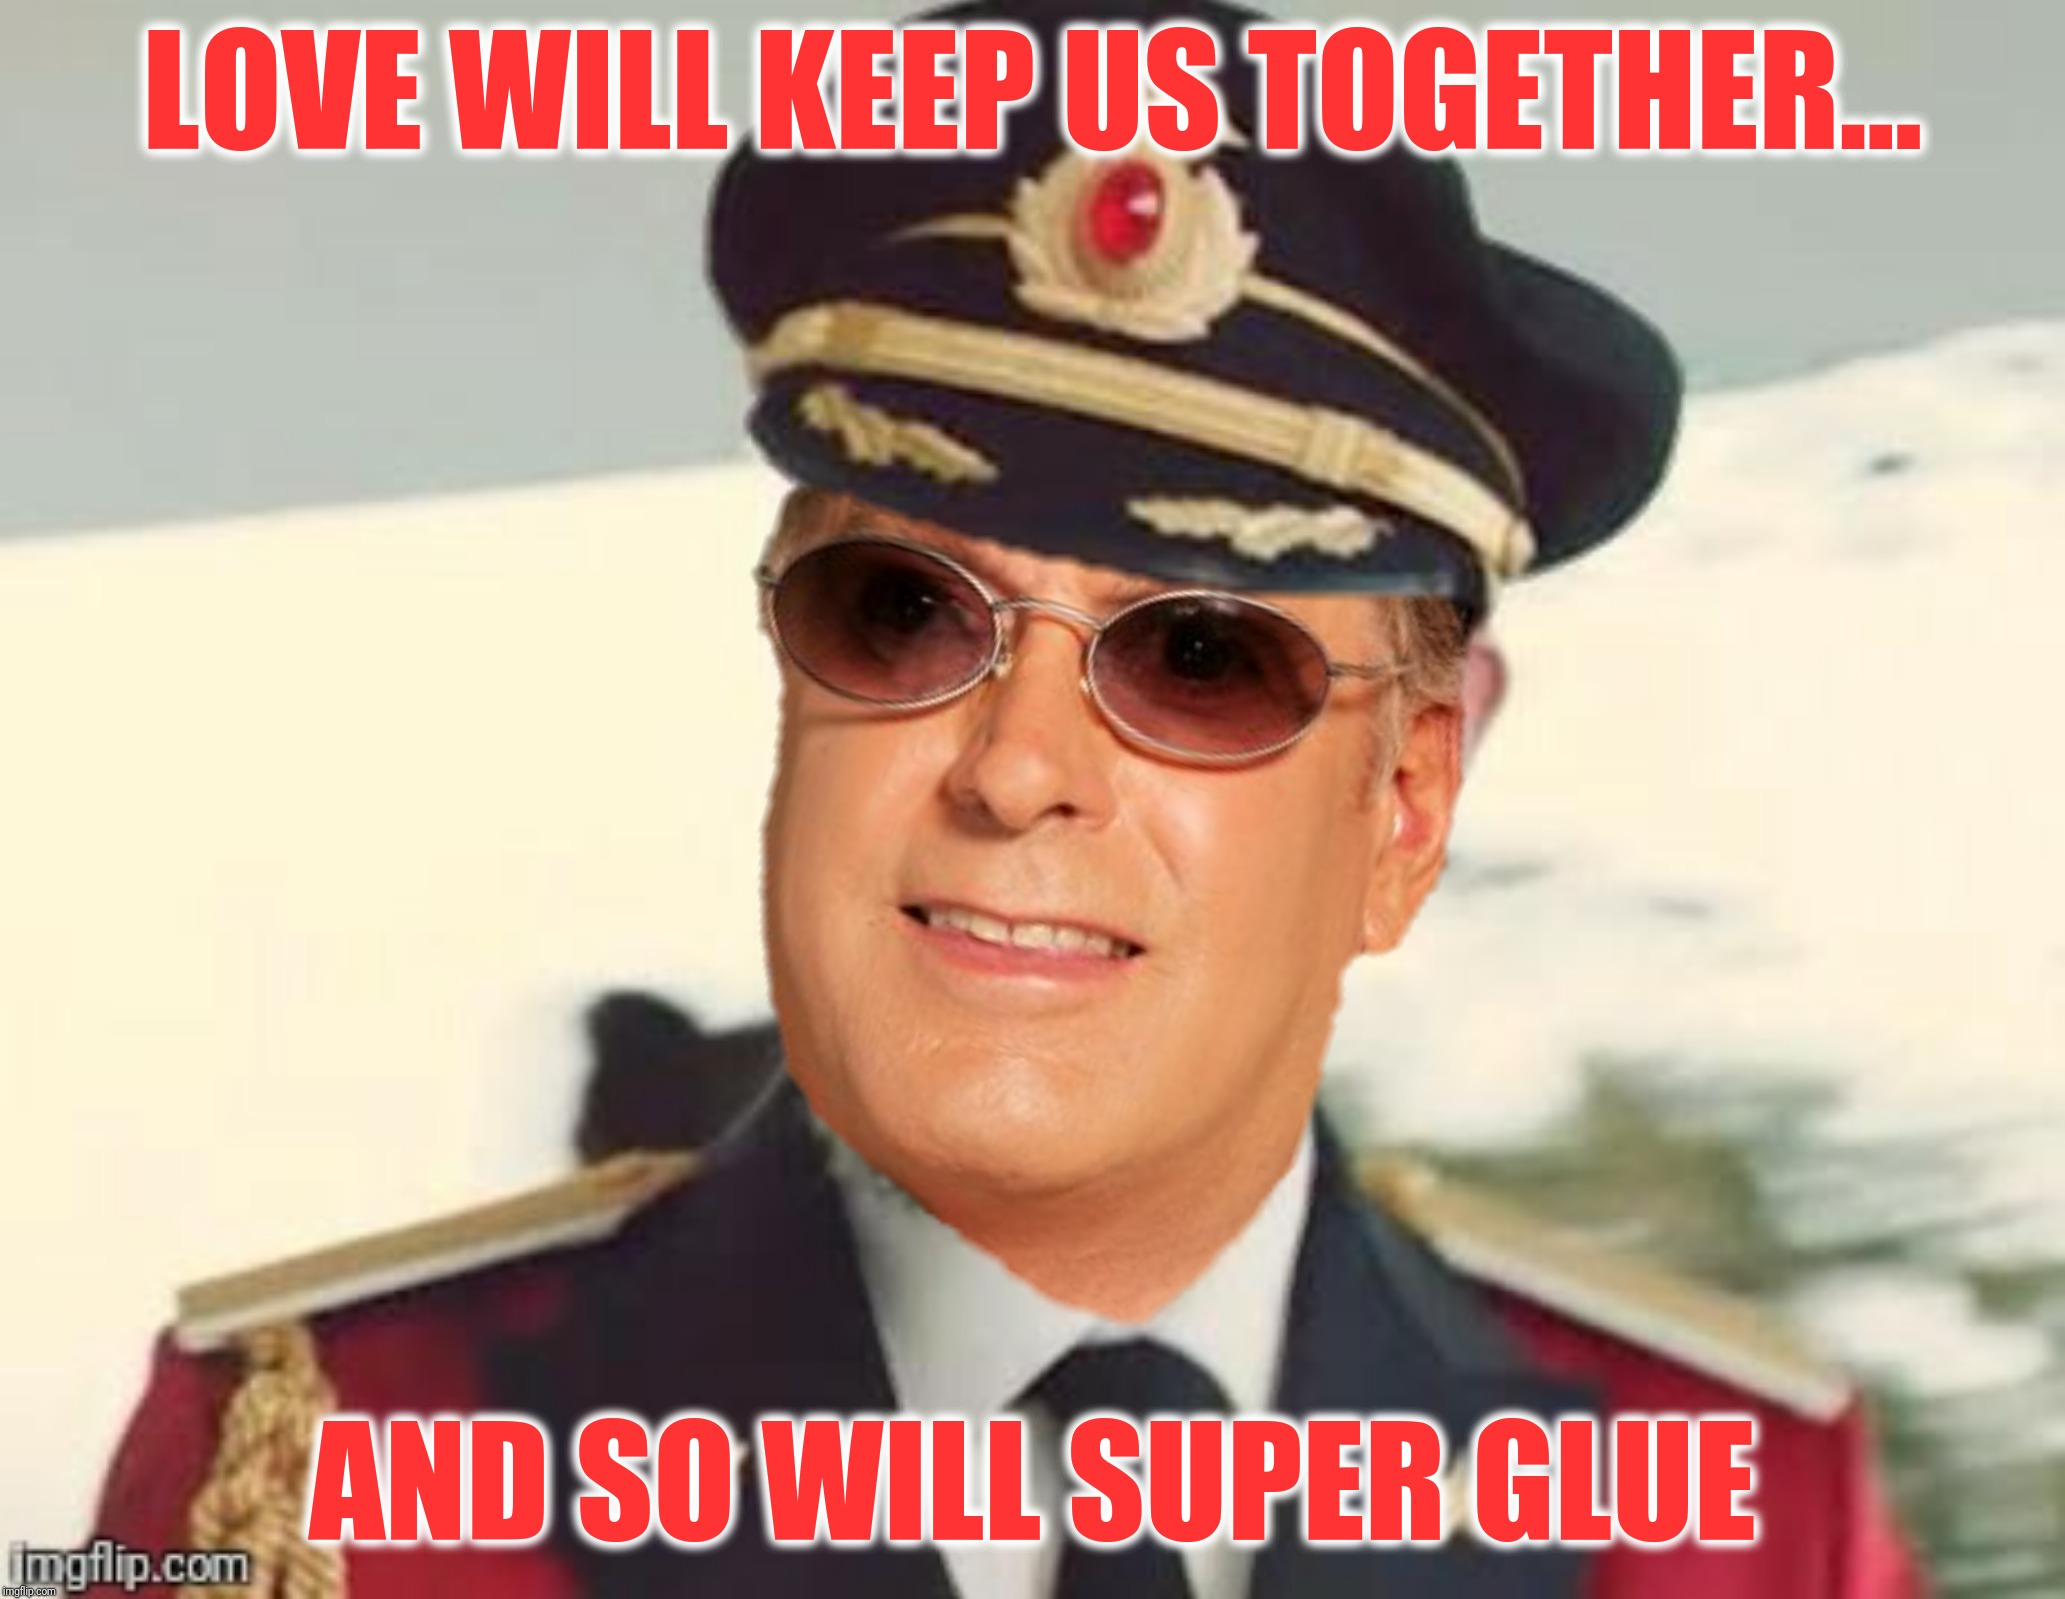 The Captain Obvious And Tennille.  Rest In Peace Daryl Dragon |  LOVE WILL KEEP US TOGETHER... AND SO WILL SUPER GLUE | image tagged in captain hindsight,the captain and tennille,love will keep us together | made w/ Imgflip meme maker